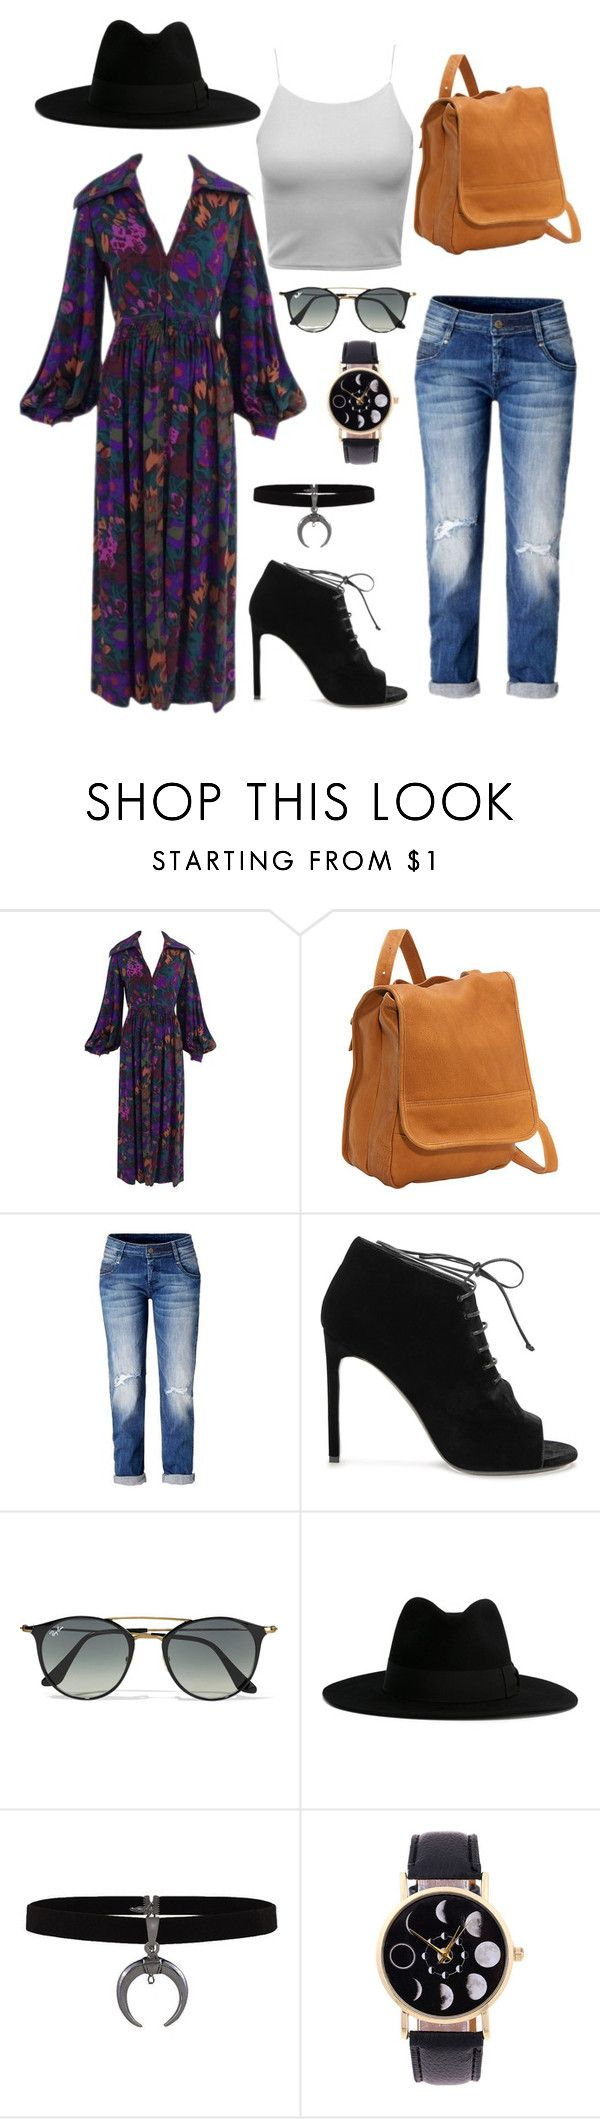 """""""Gypsy Lala casual"""" by oneluvlyn ❤ liked on Polyvore featuring Le Donne, Yves Saint Laurent and Ray-Ban"""